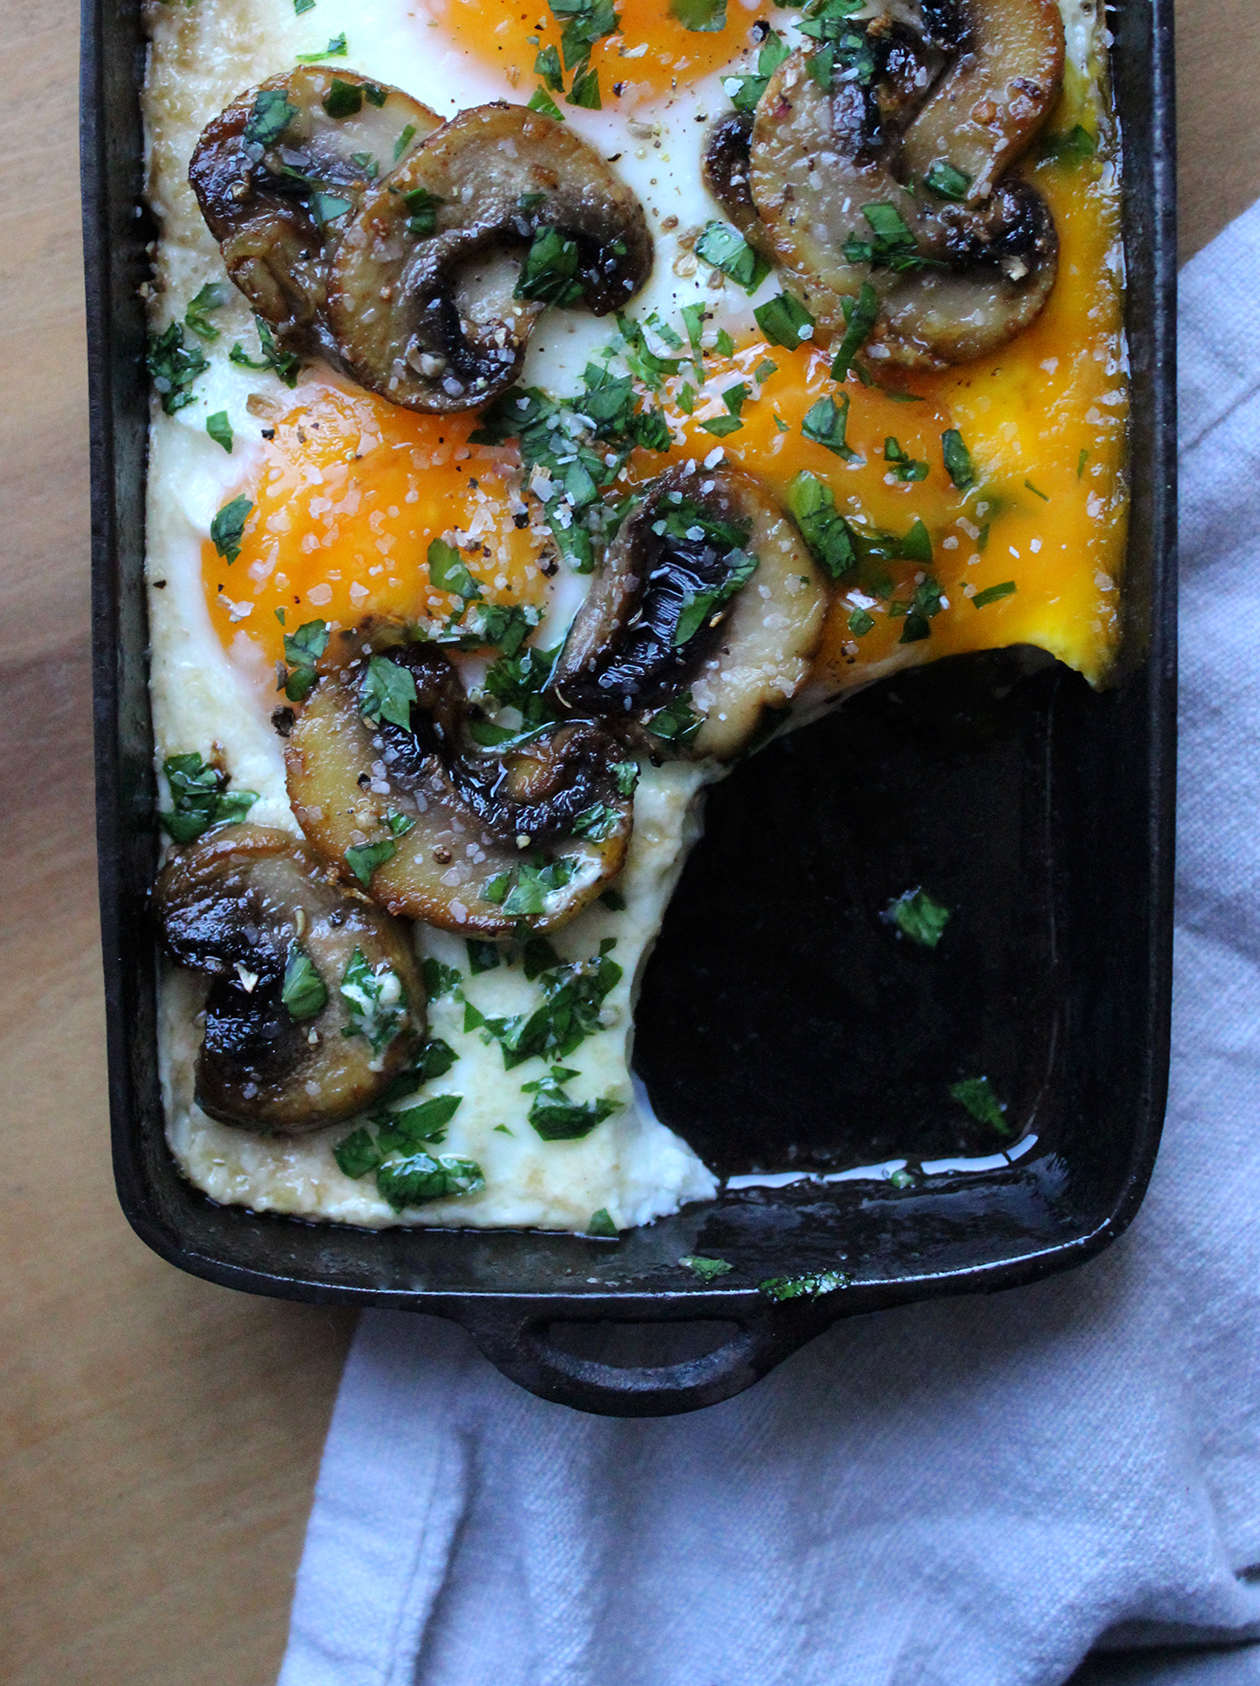 Baked eggs with garlic mushrooms one happy place baked eggs with garlic mushrooms forumfinder Gallery